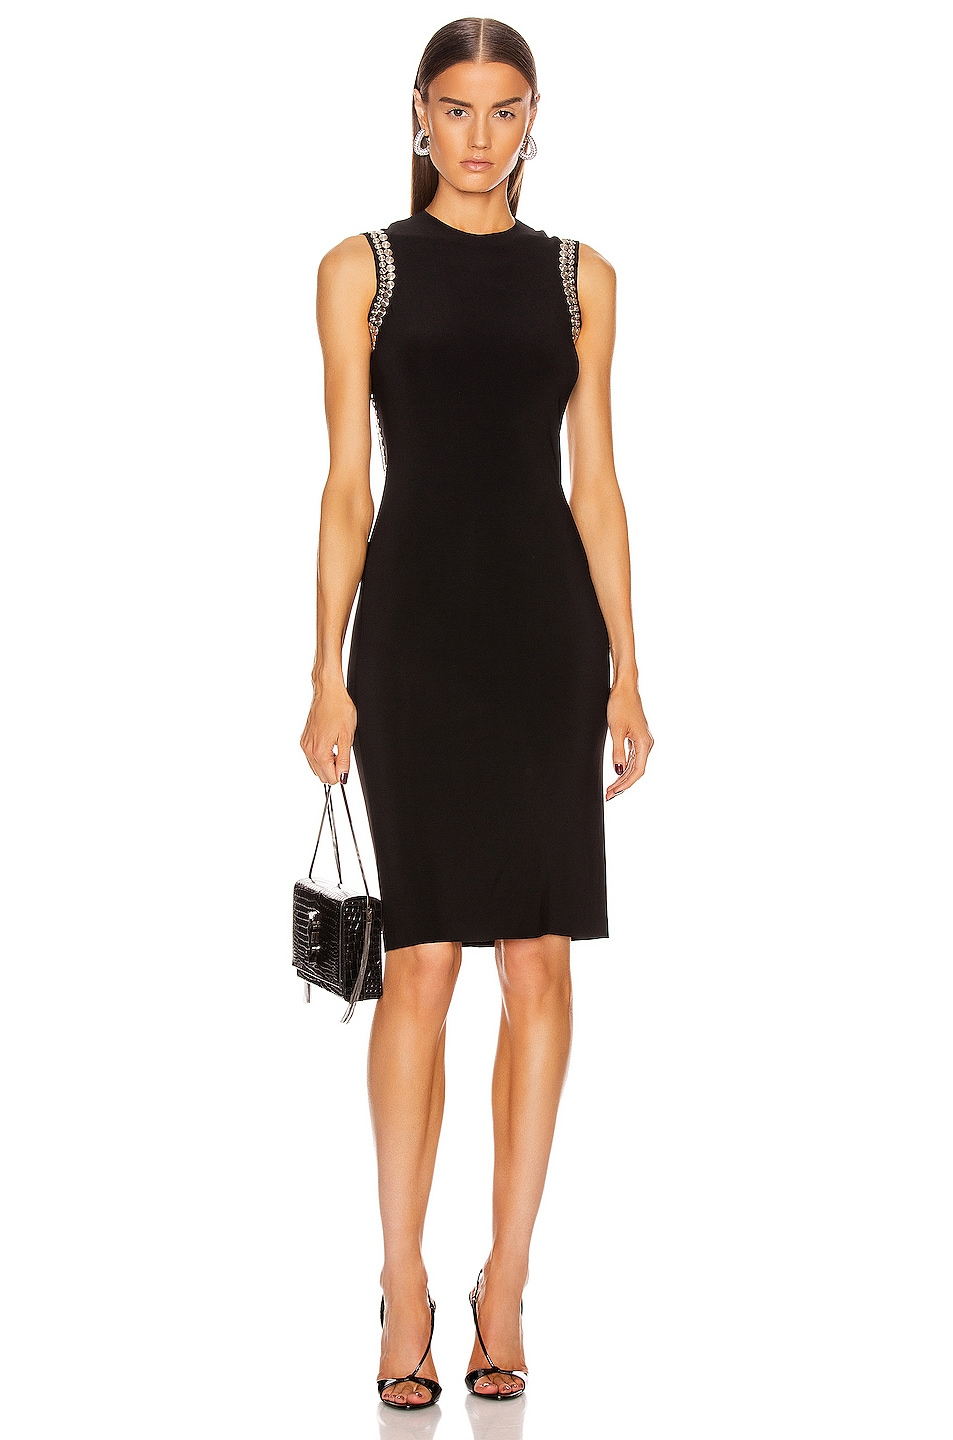 Image 2 of Norma Kamali for FWRD Studded Open Back Dress in Black